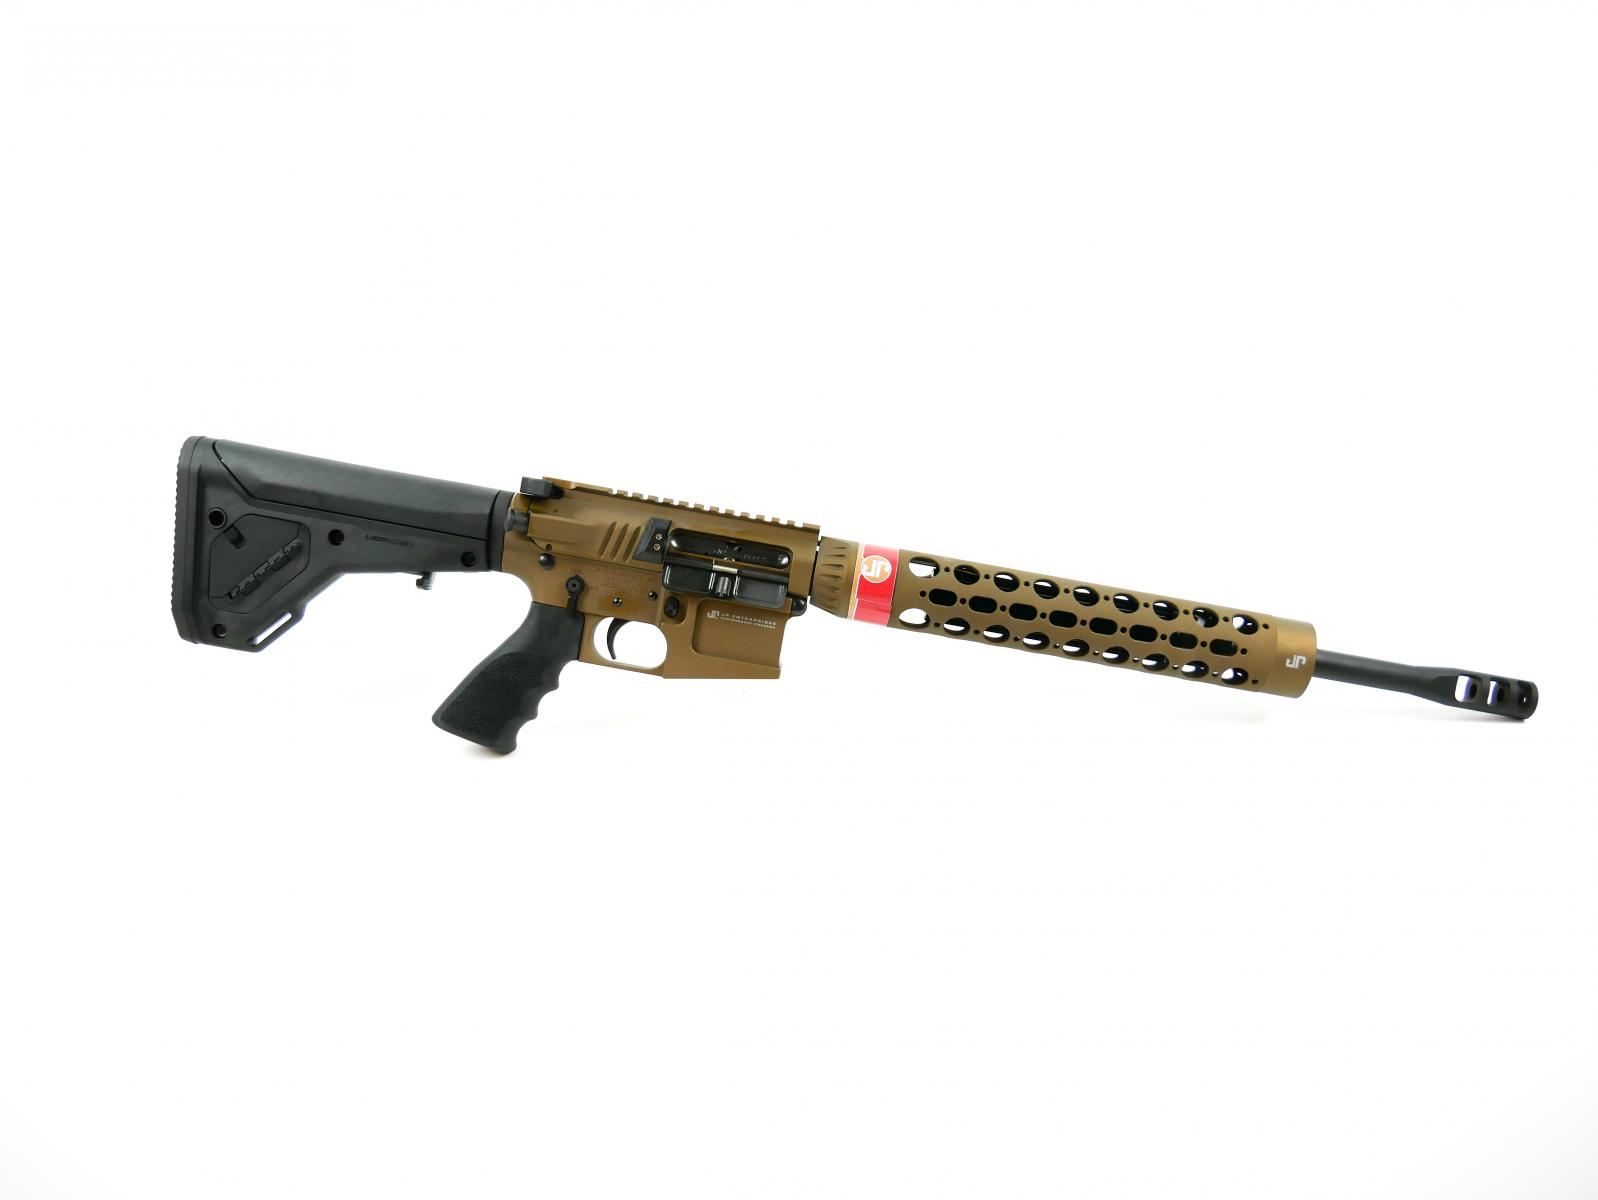 "JP PSC-11 |223 Wylde 16"" 1:8 Twist Black Teflon Barrel, Burnt Bronze Cerakote, Billet Upper/Lower w/ Dual Charge System, UBR2 Stock, Black Thermal Dissipator, Silent Captured Recoil Spring, Low Mass BCG"